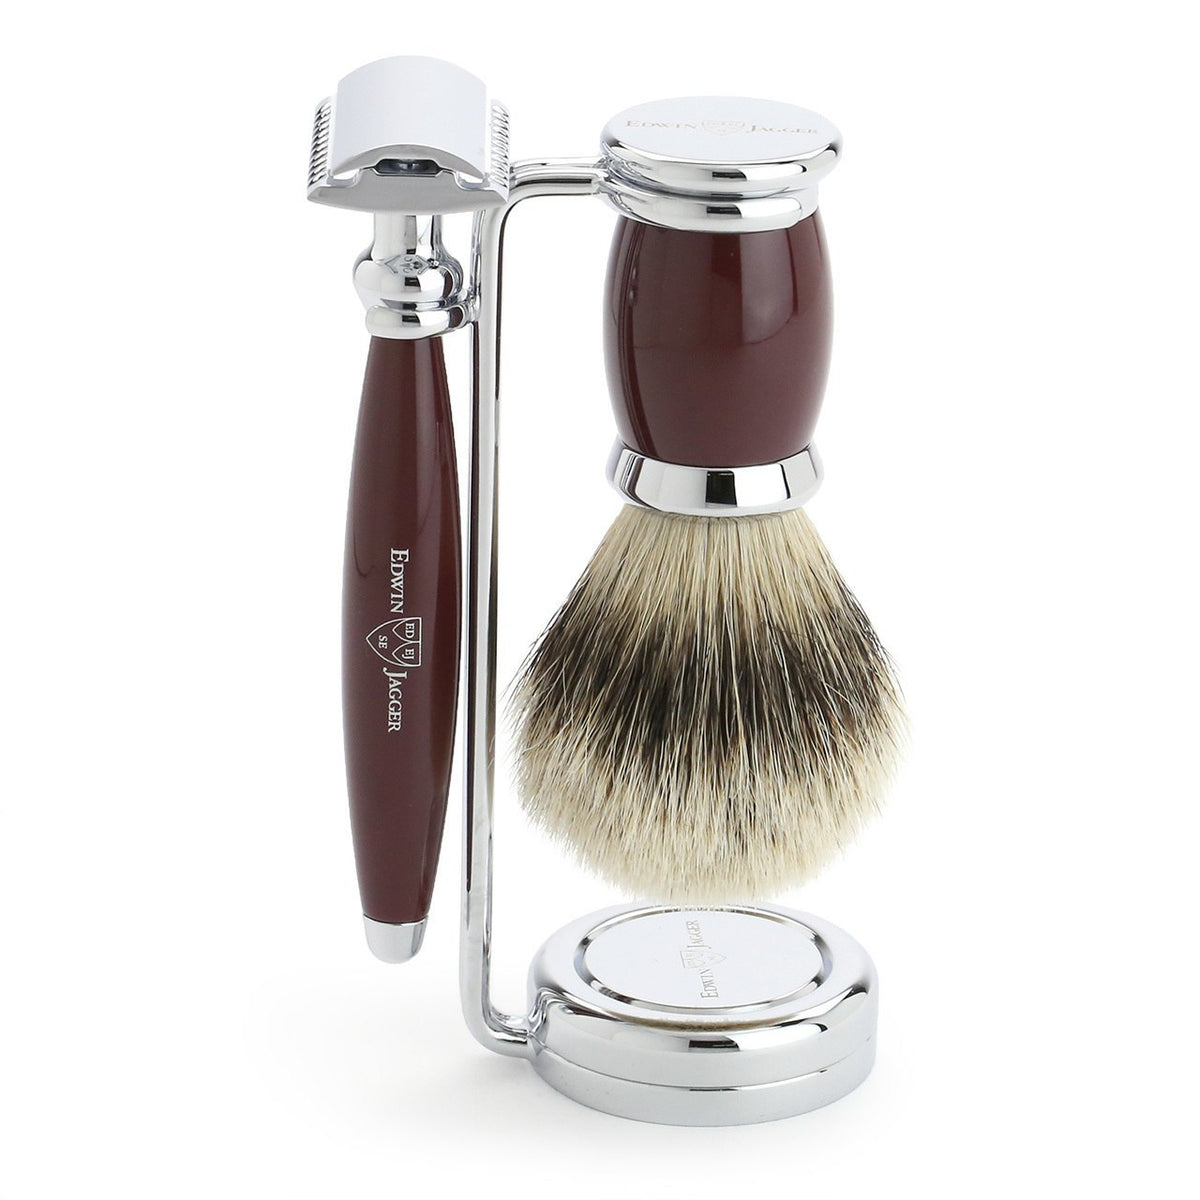 Edwin Jagger Bulbous 3 Piece Chrome Plated Shaving Set - Red